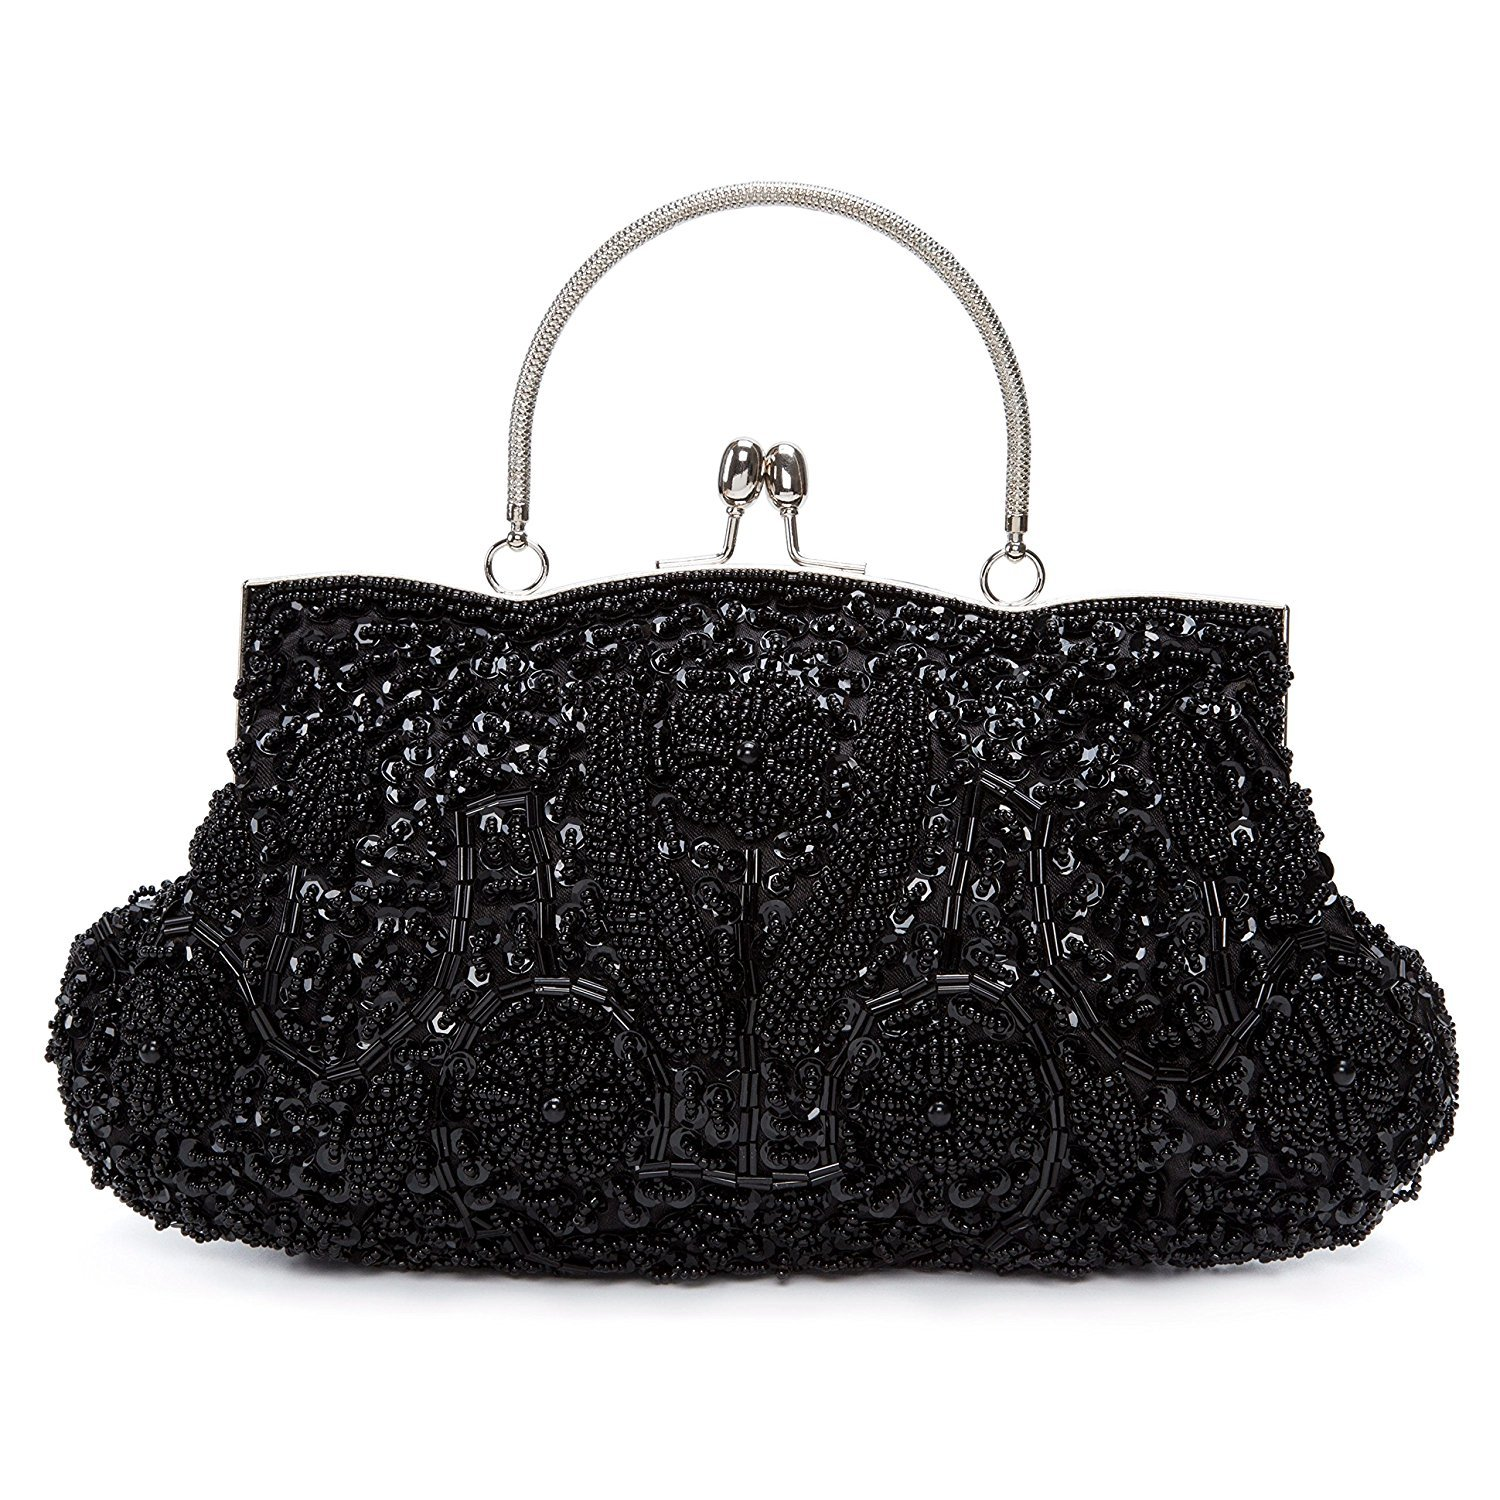 MY Women's Vintage Sequin Beaded Kiss Lock Evening Bags Wedding Party Handbag Clutches Purse,Black